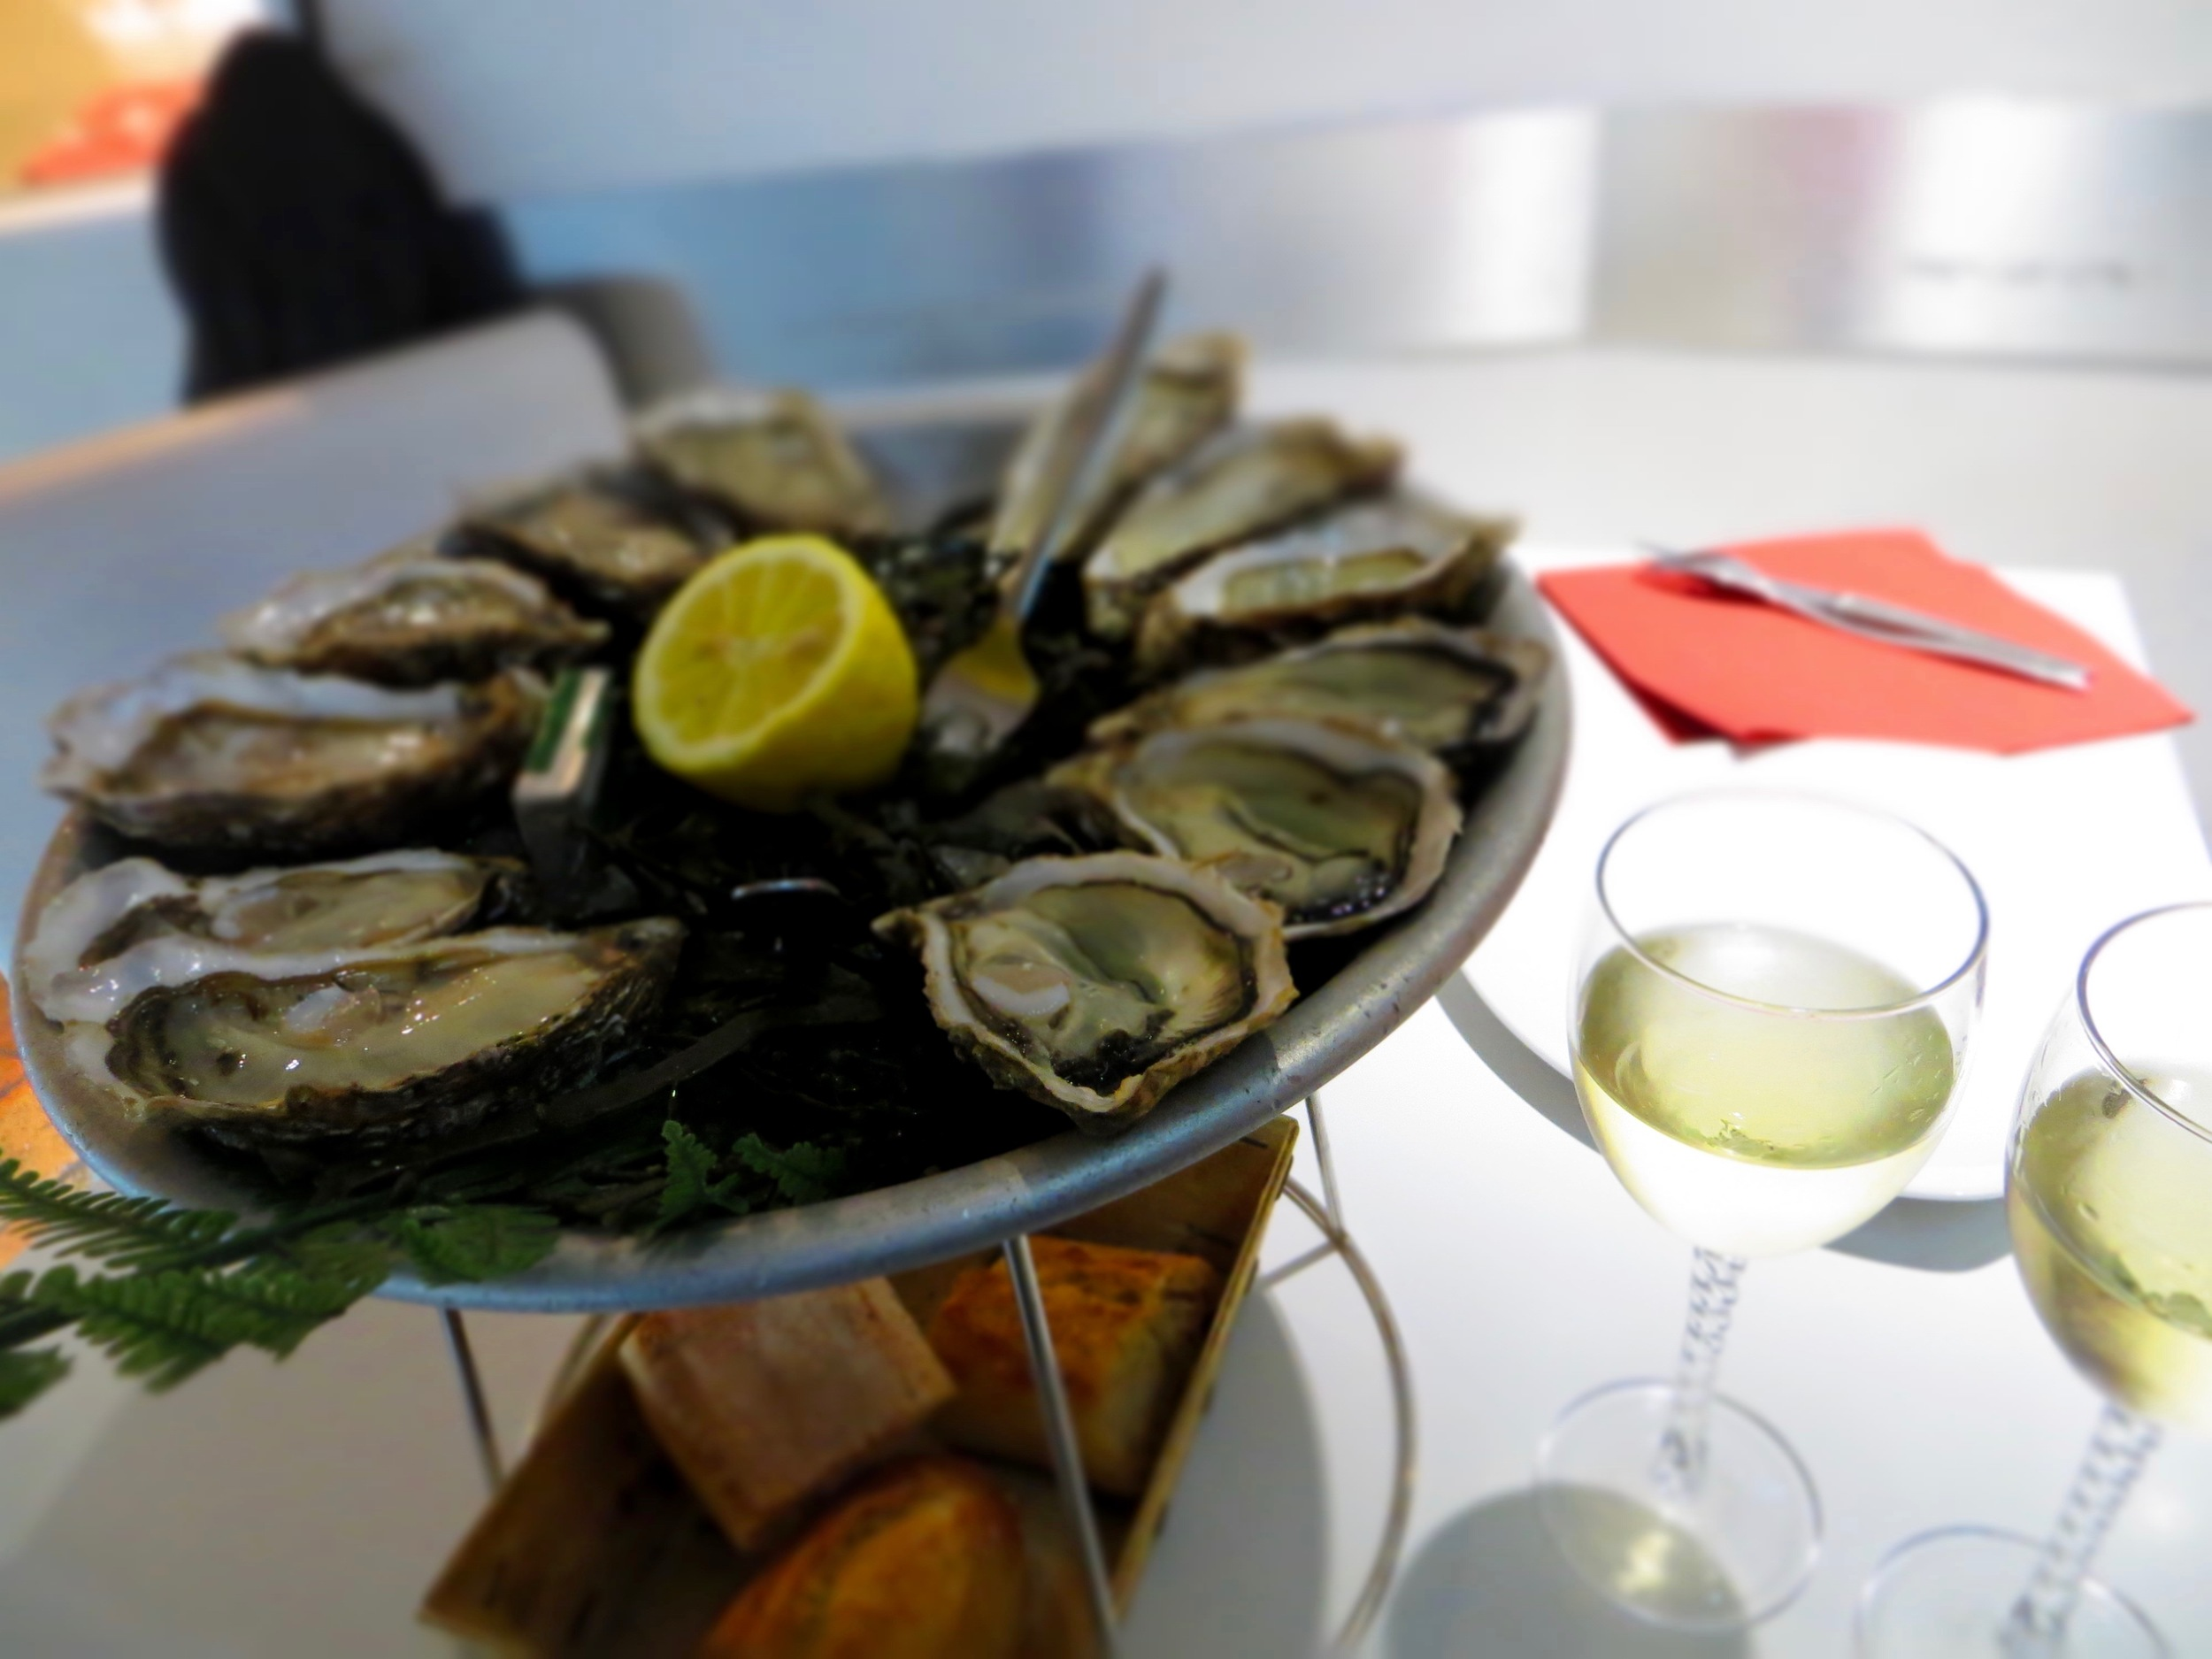 Oysters, beautifully presented, at a Parisian oyster bar. Image by Ben Ford for Down to Shuck.